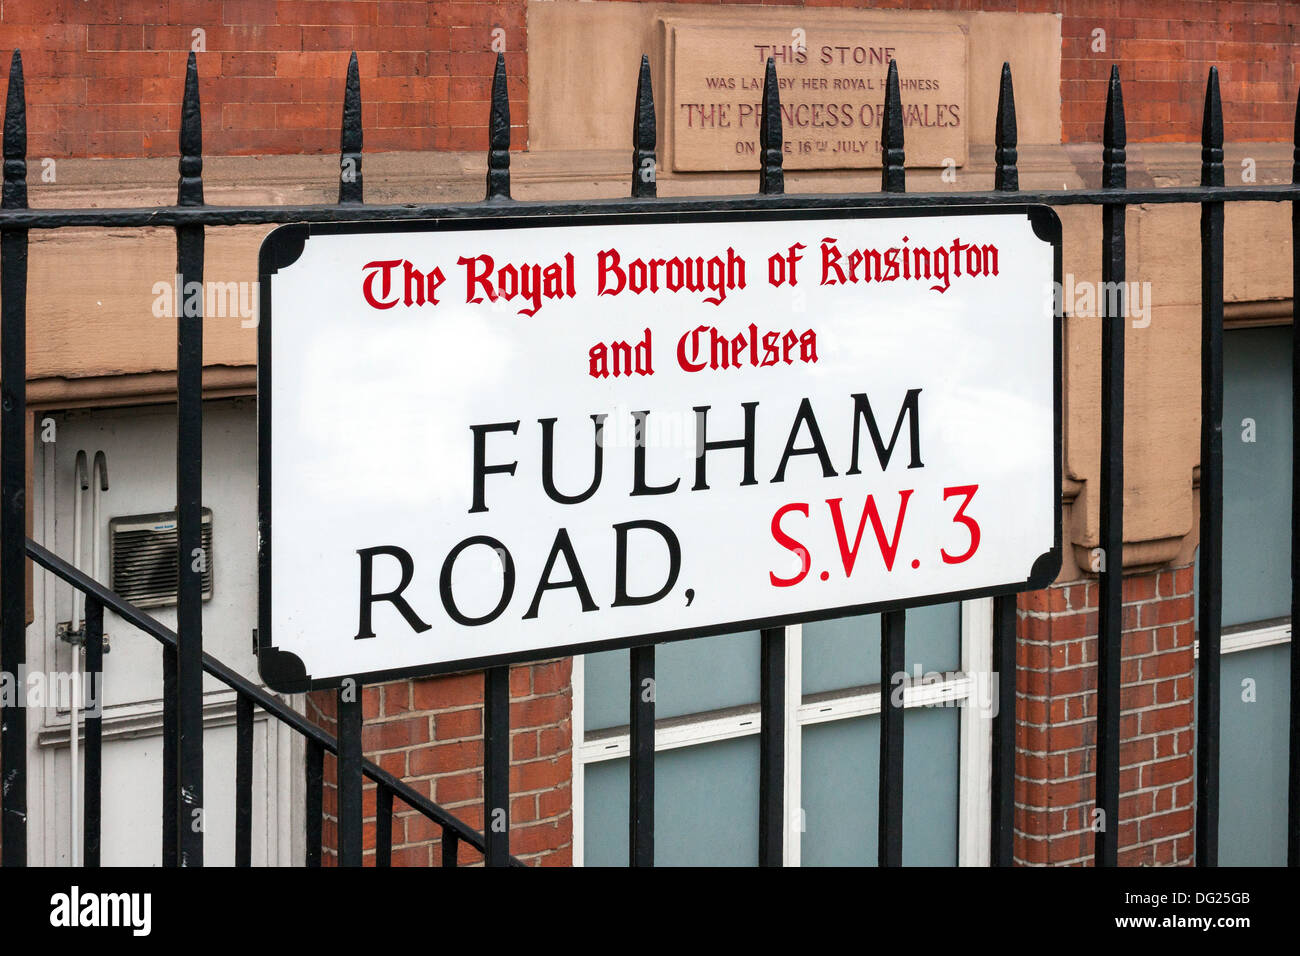 Fulham Road road sign - Stock Image